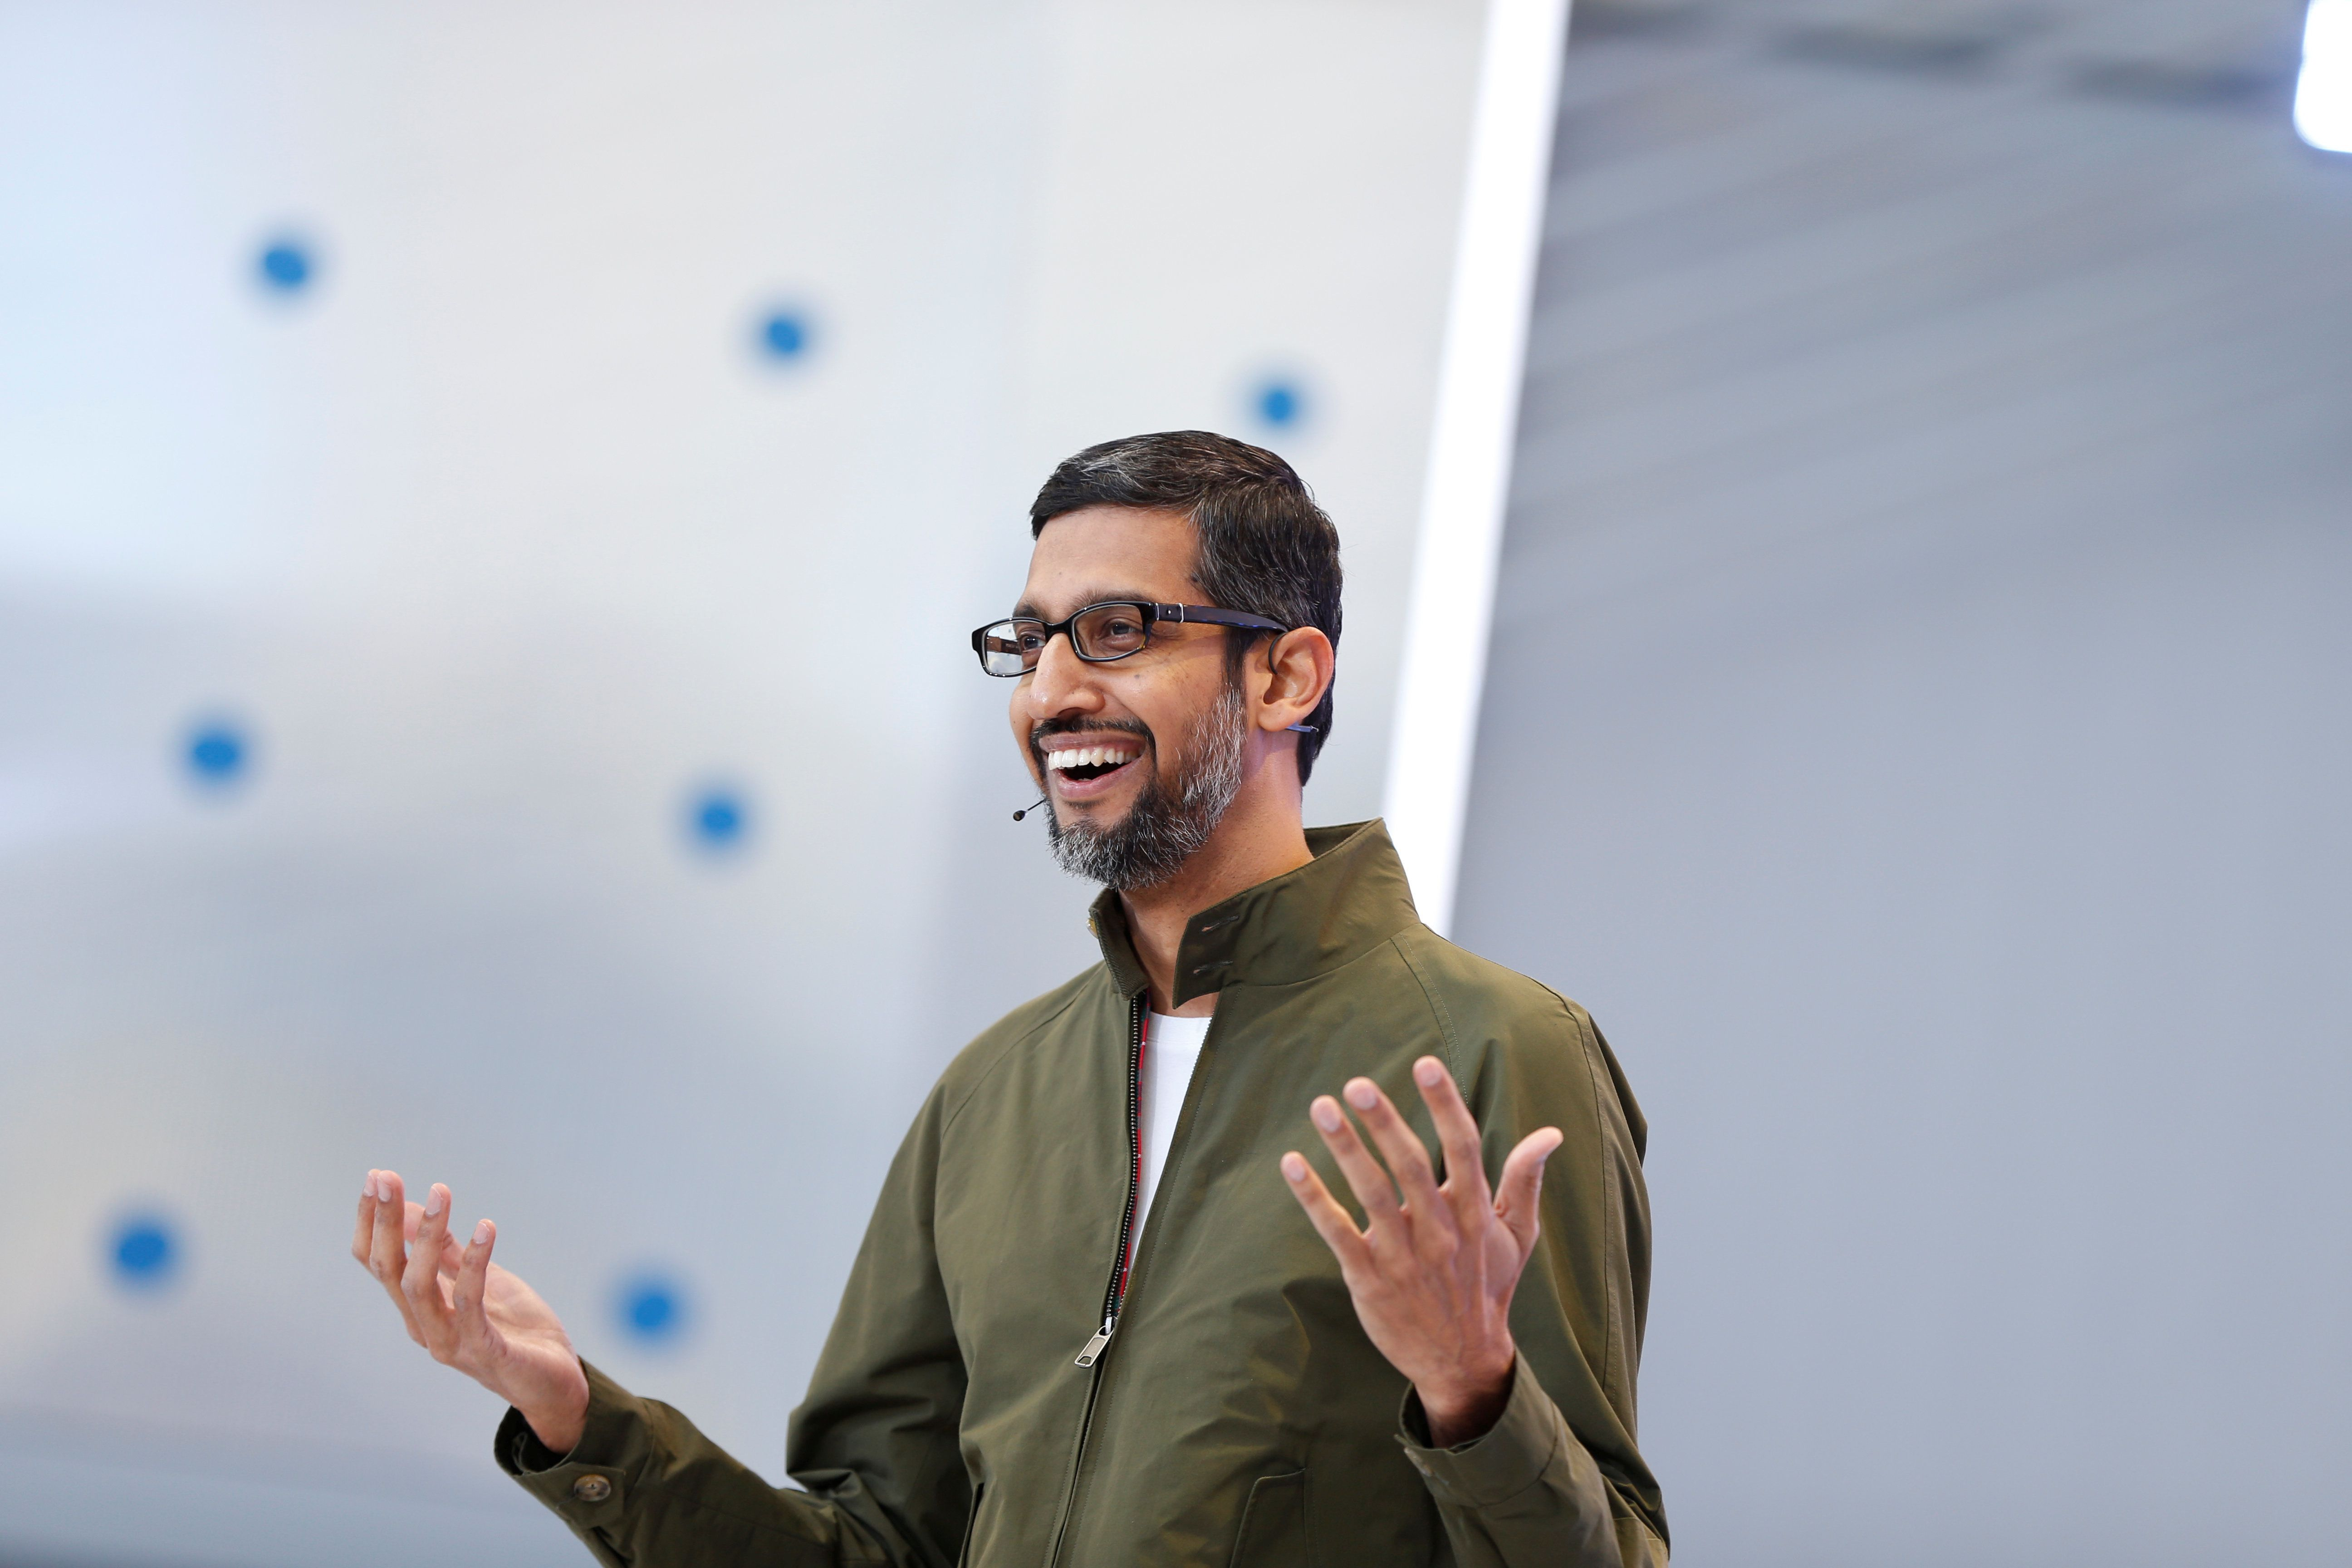 Google's AI Assistant Can Now Make Phone Calls For You